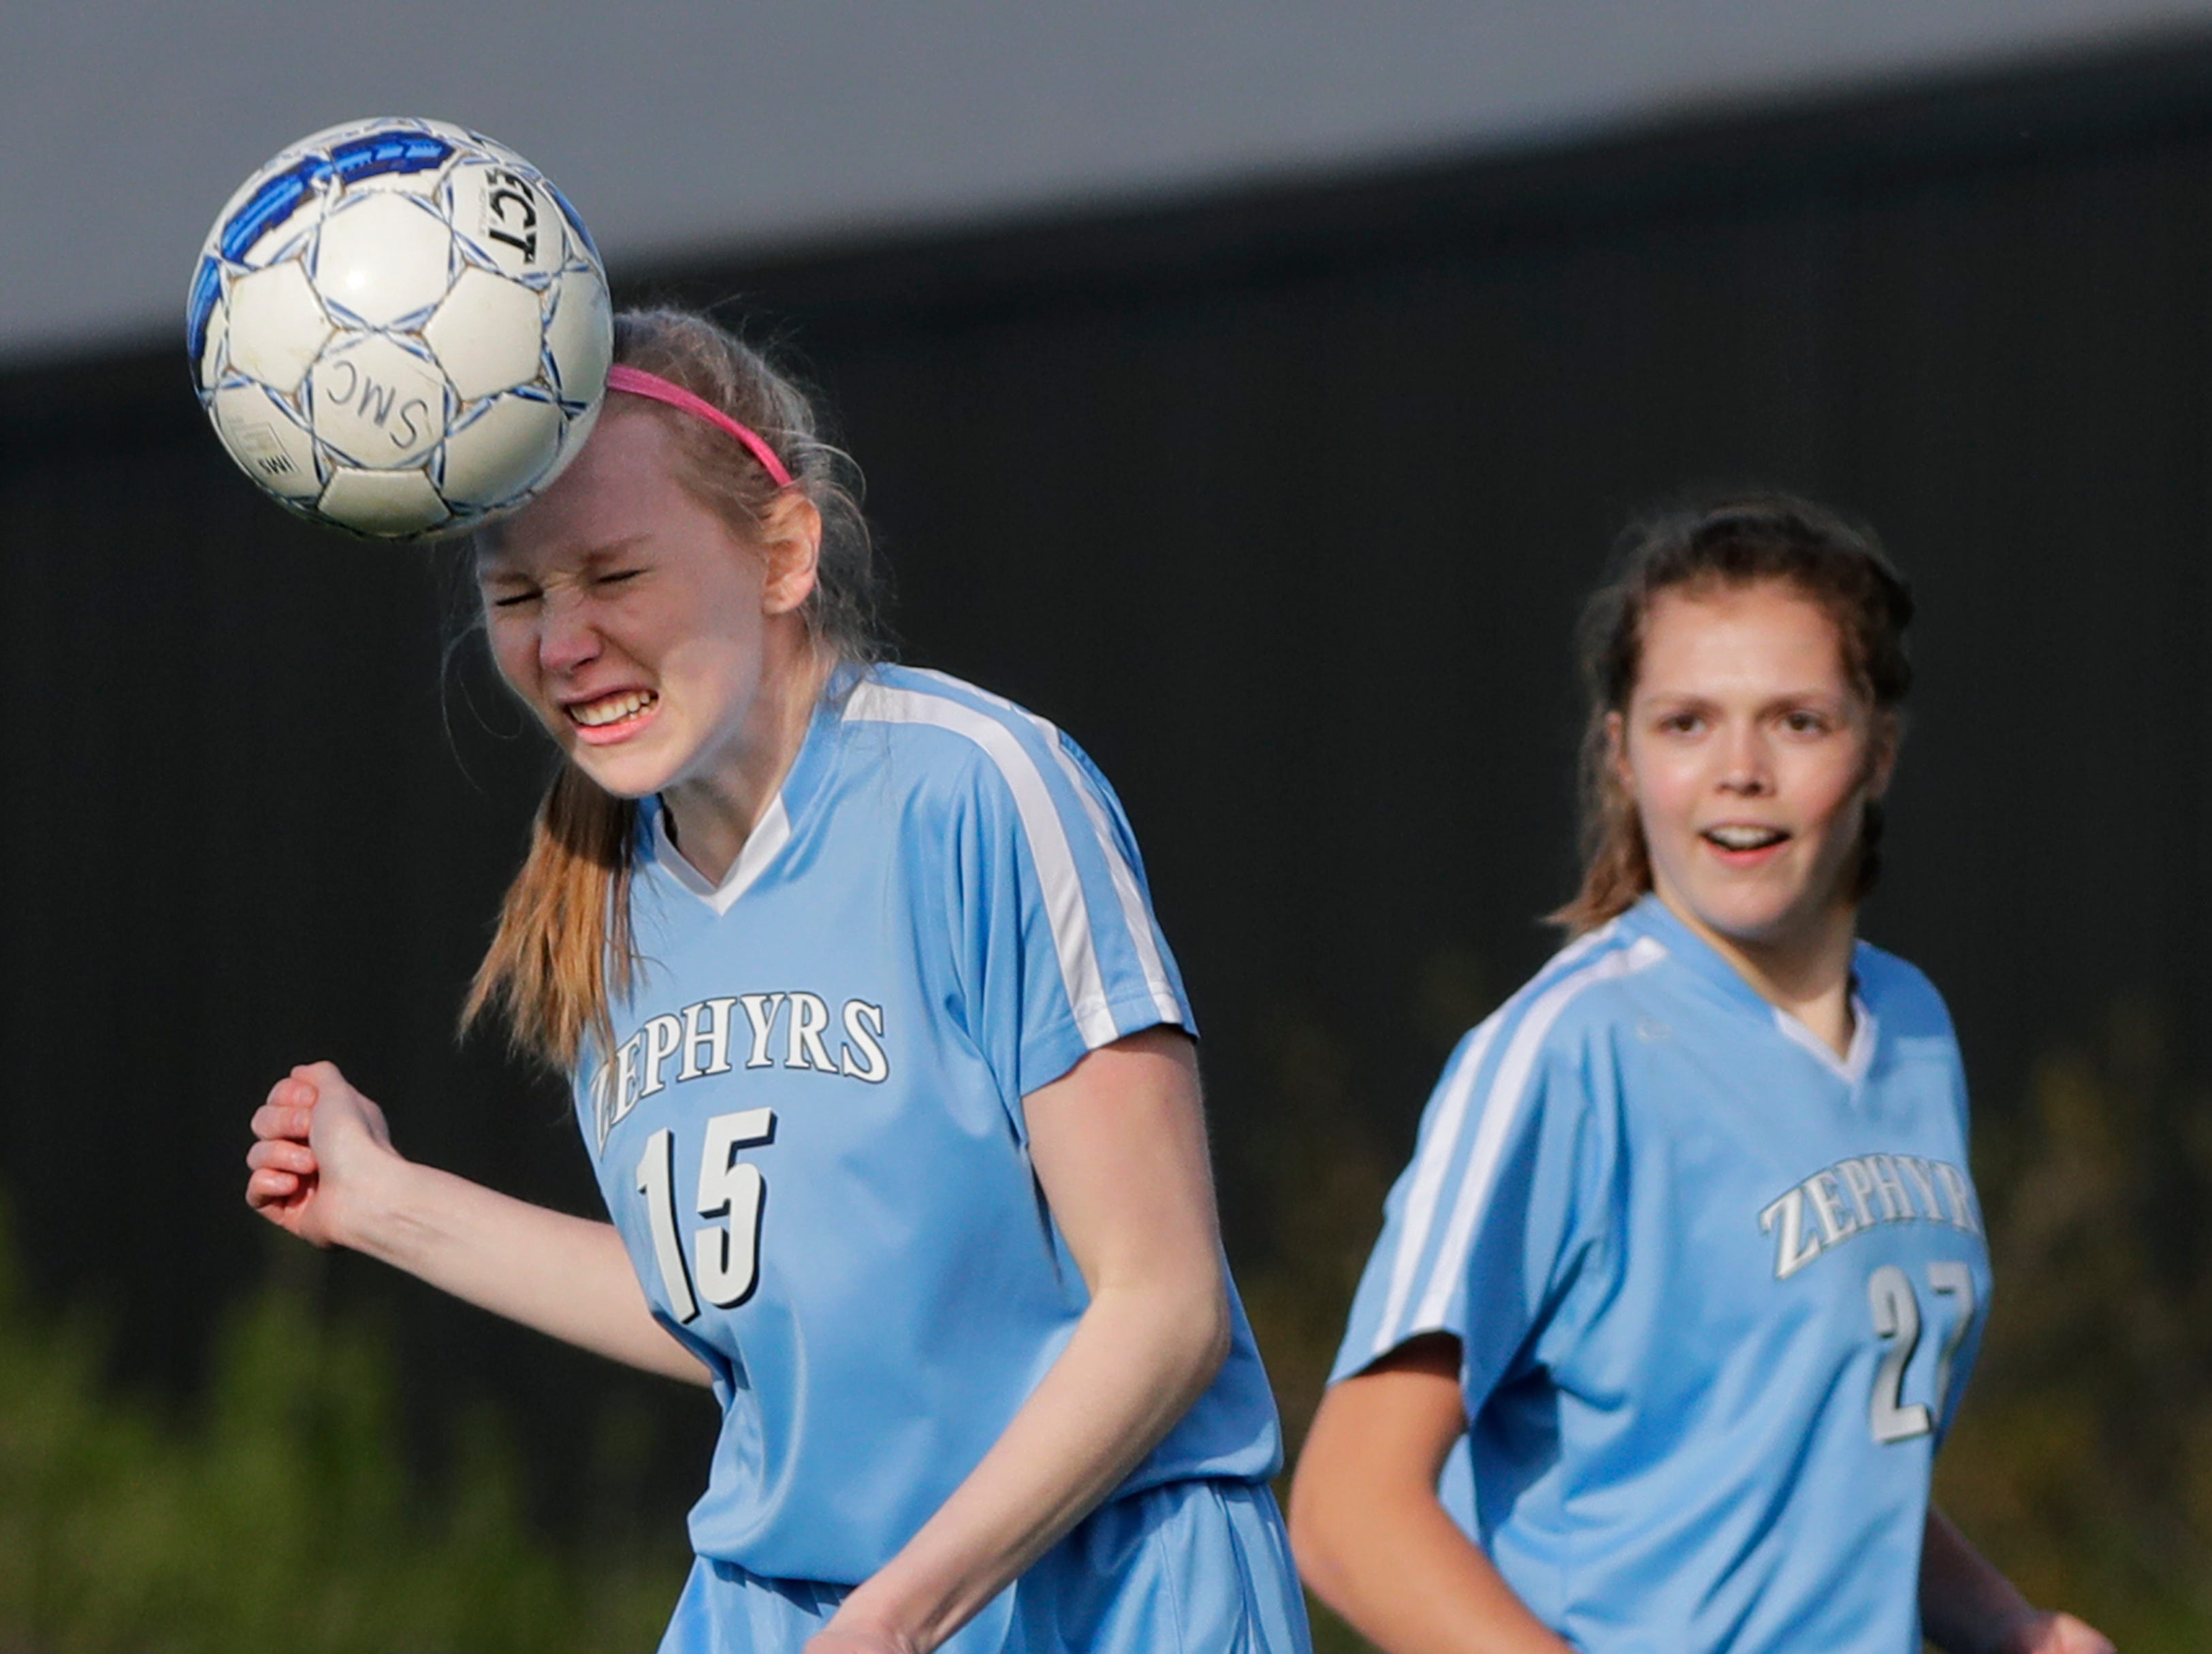 St. Mary Catholic High School's Sophie Taubel (15) heads the ball against Roncalli High School during their girls soccer game Tuesday, May 7, 2019, in Fox Crossing, Wis. 